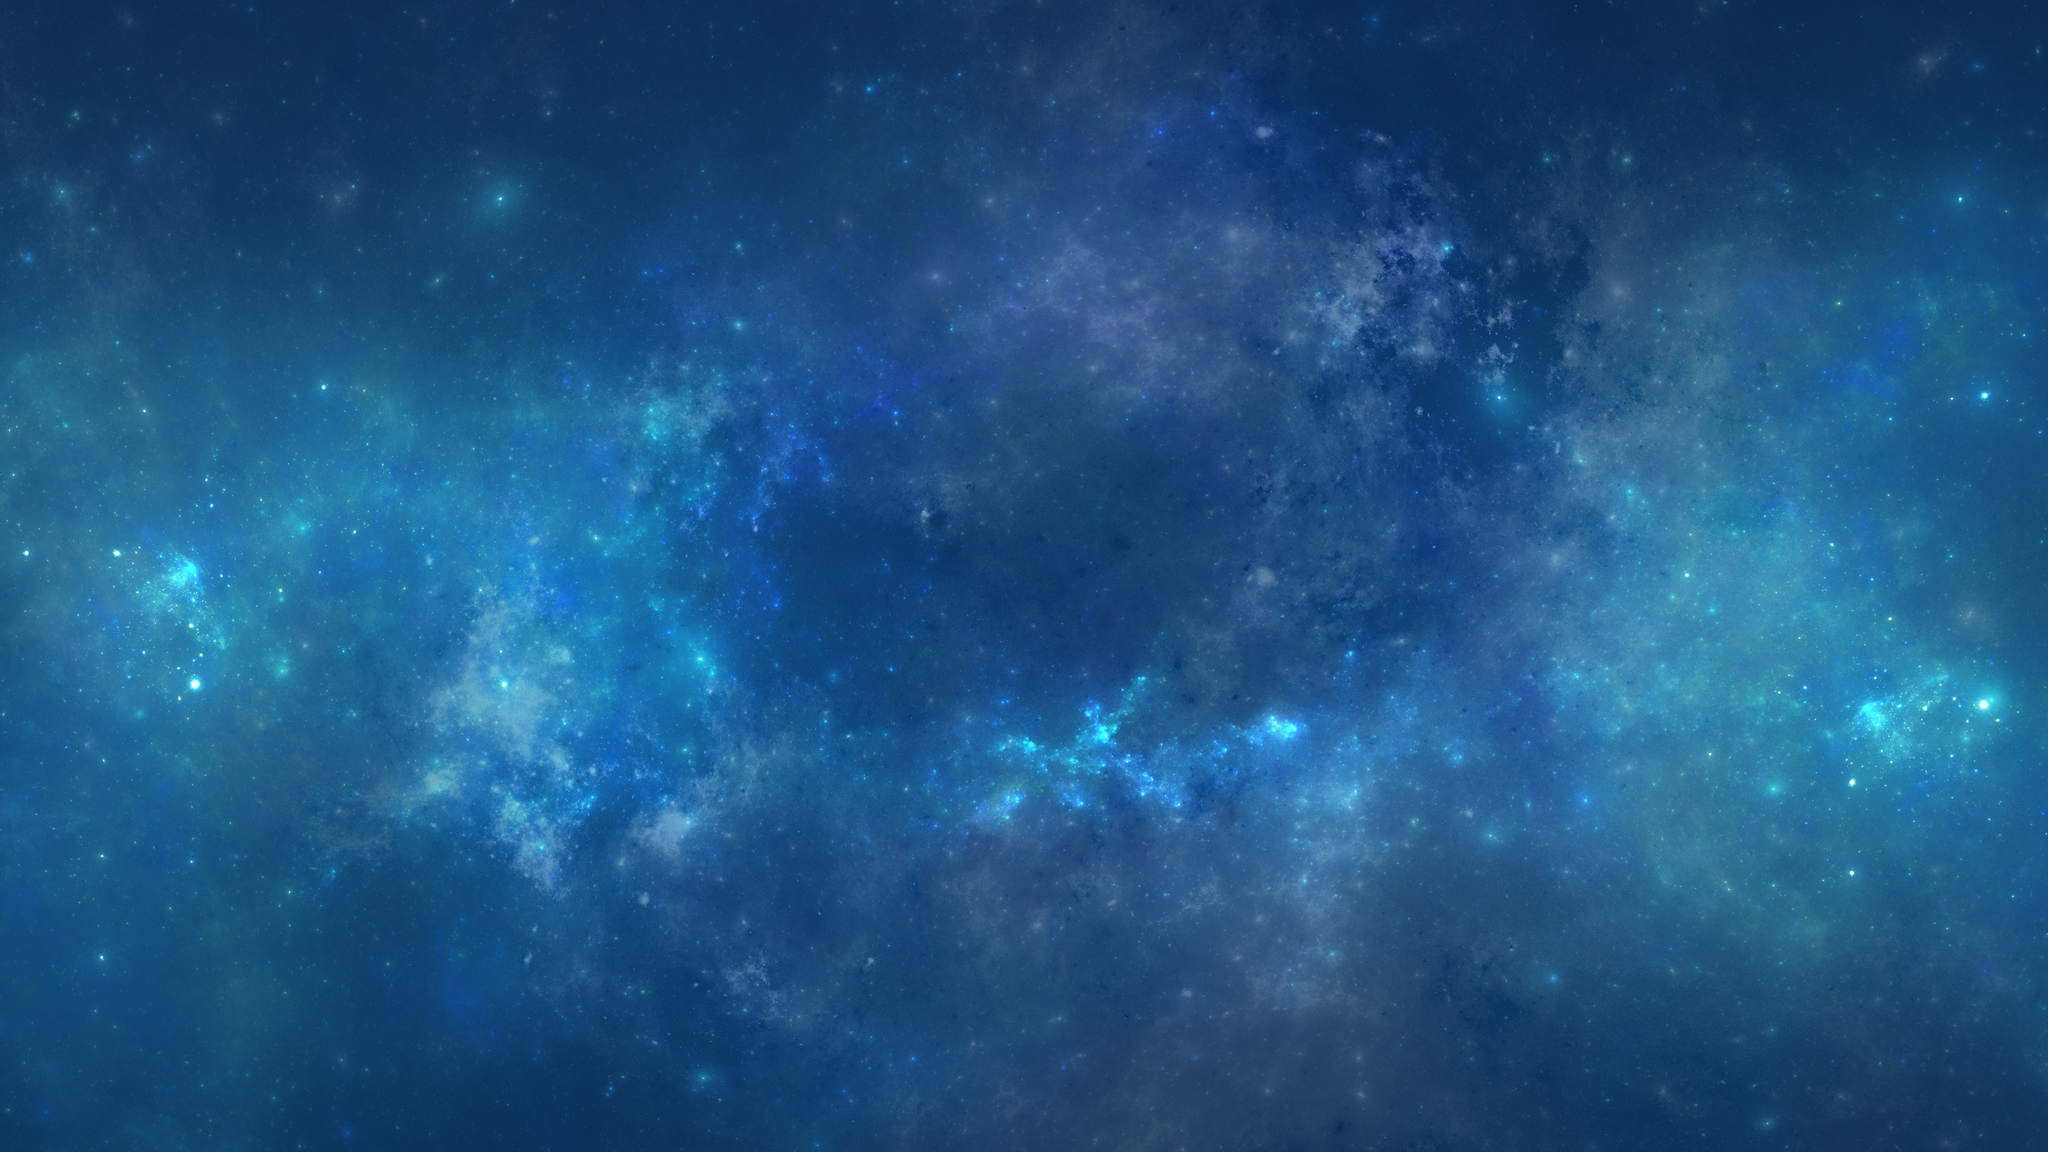 Full HD Wallpapers Blue Drawings and Paintings Space Nebulae 2048x1152